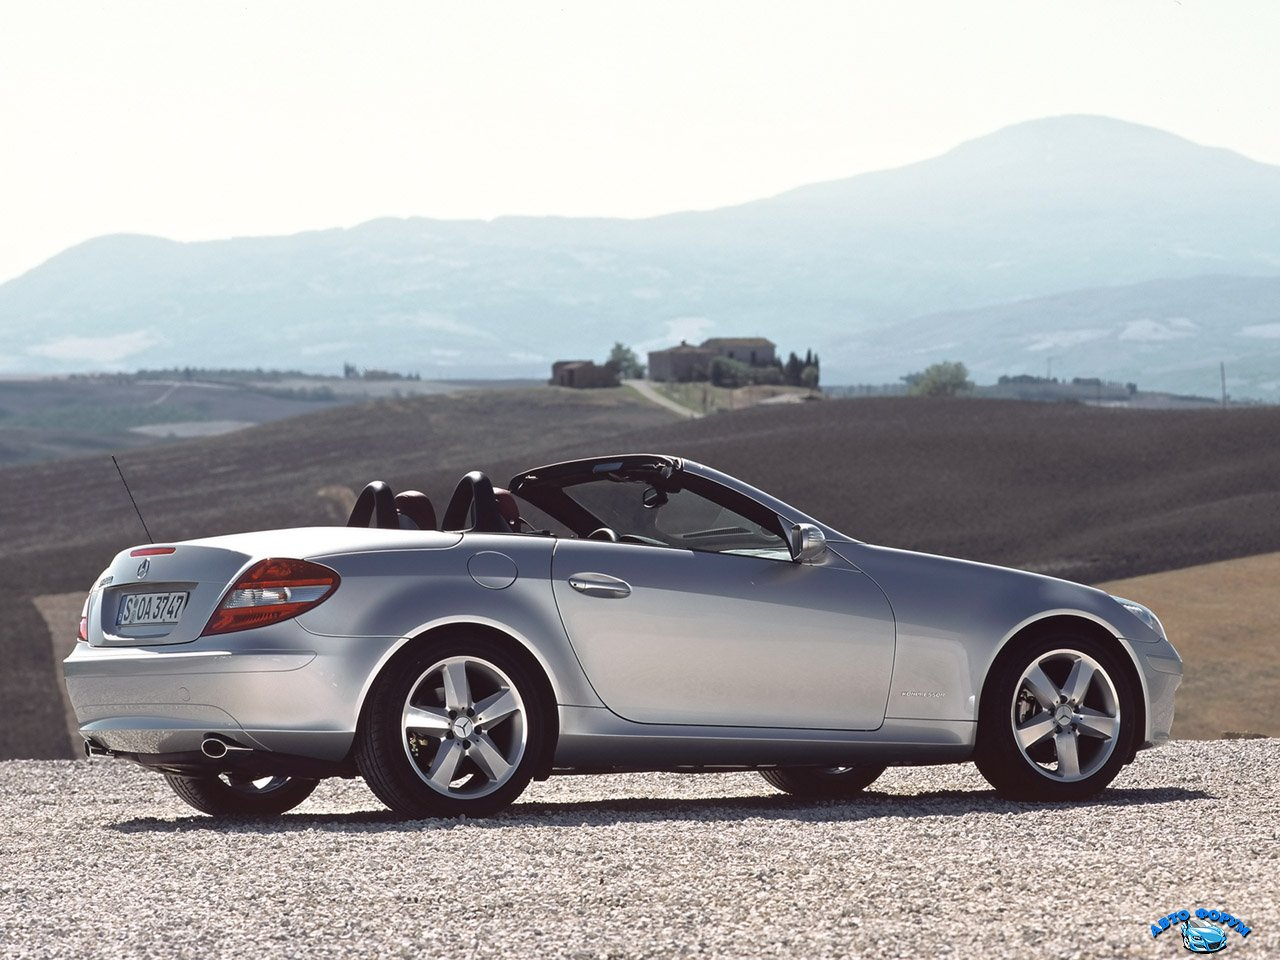 2004-Mercedes-Benz-SLK-200-Kompressor-RS-House-1280x960.jpg